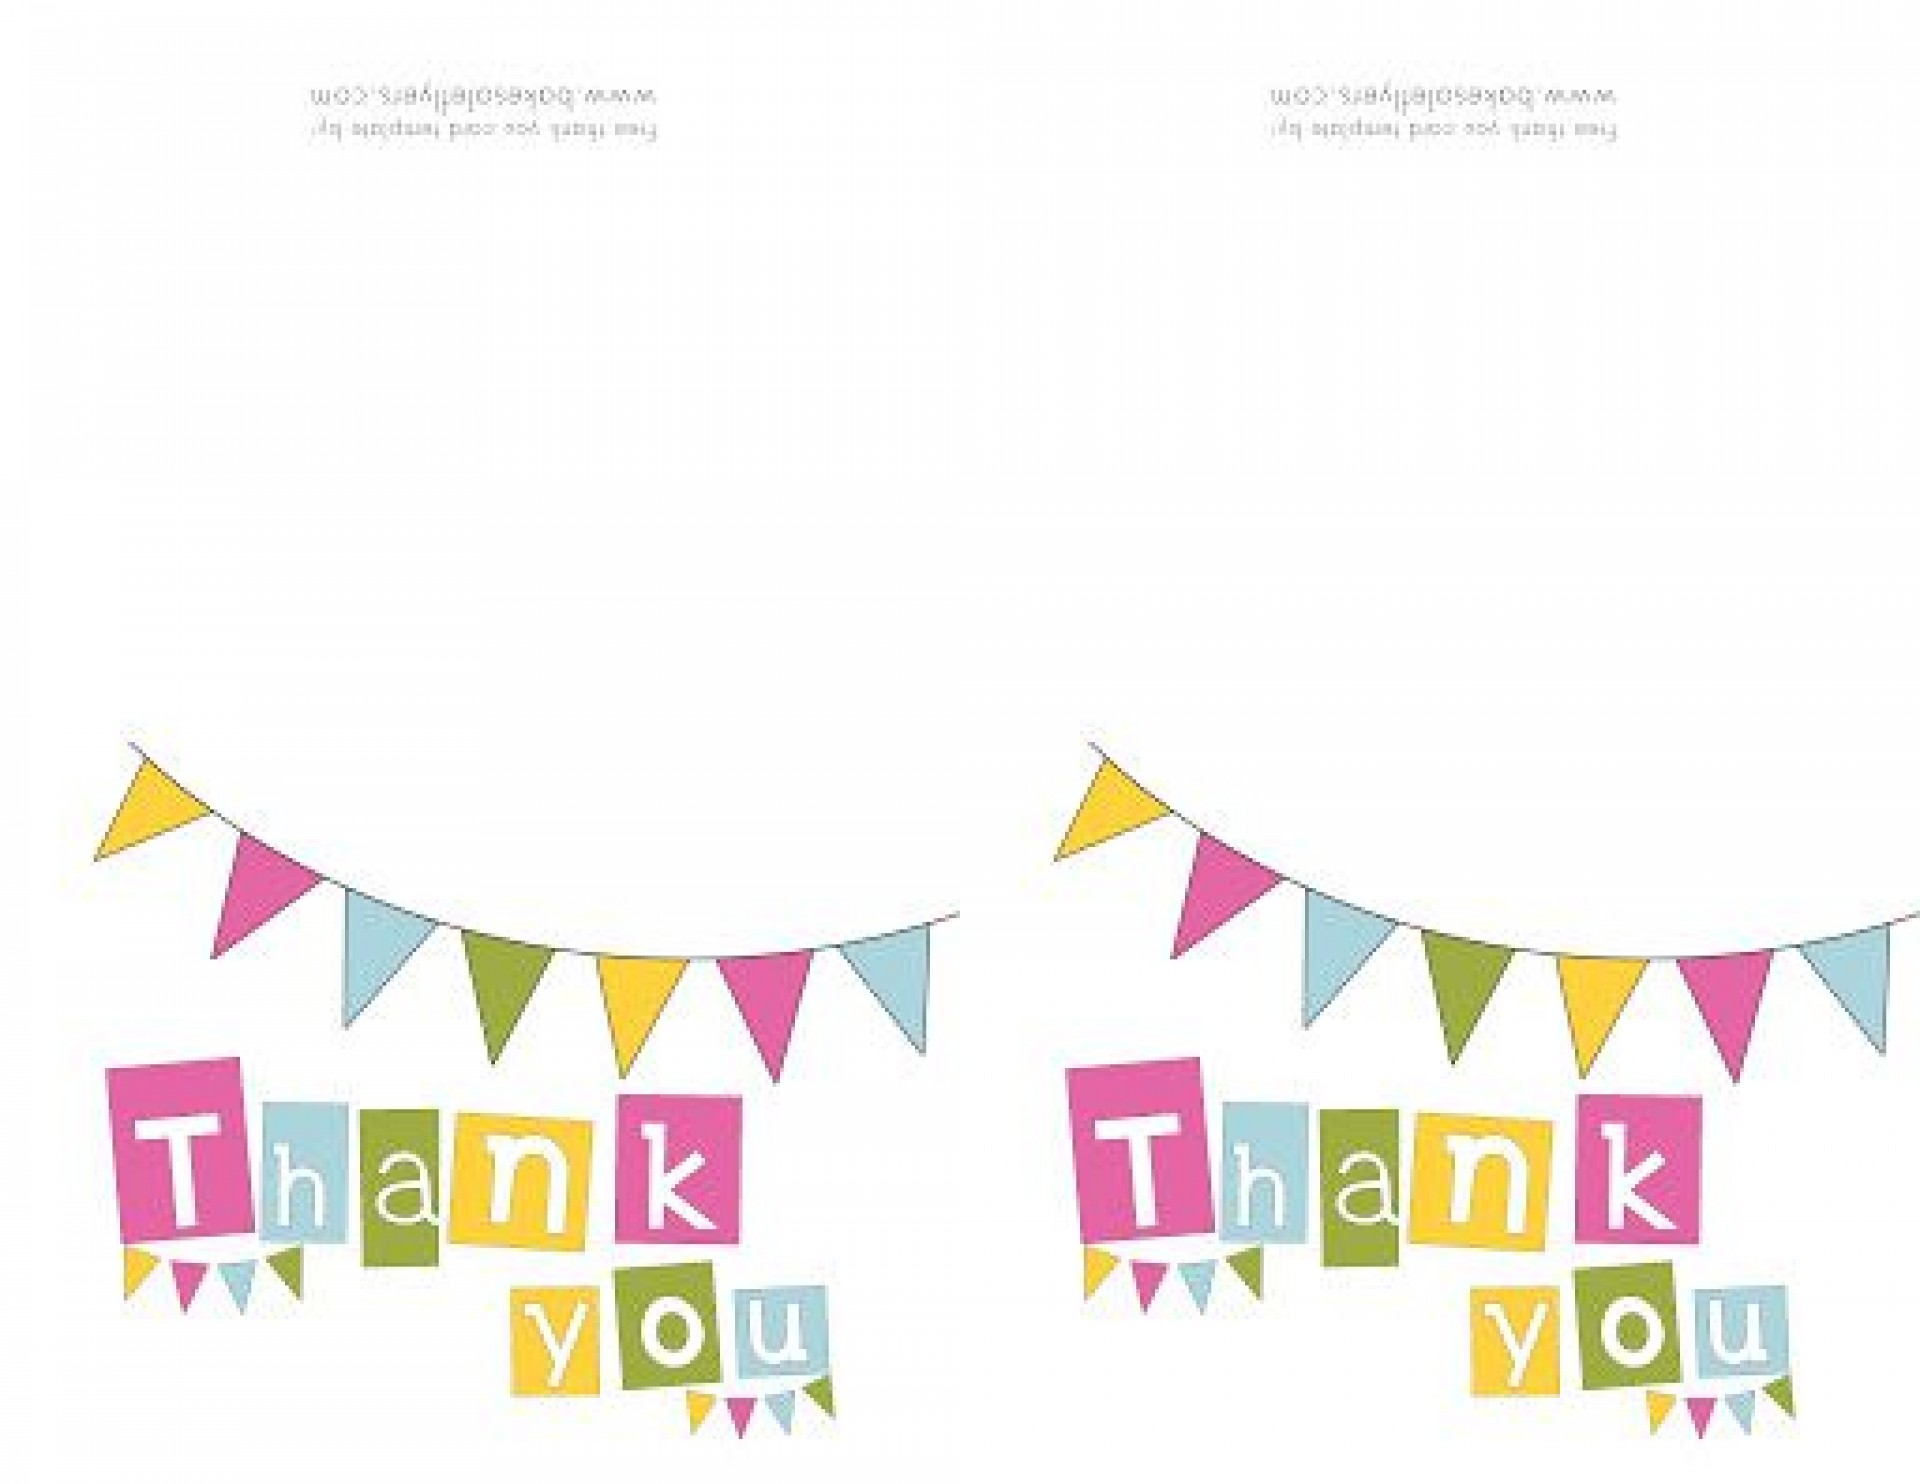 009 Striking Thank You Note Template Pdf Photo  Card Free Sample Letter For Donation Of Good1920